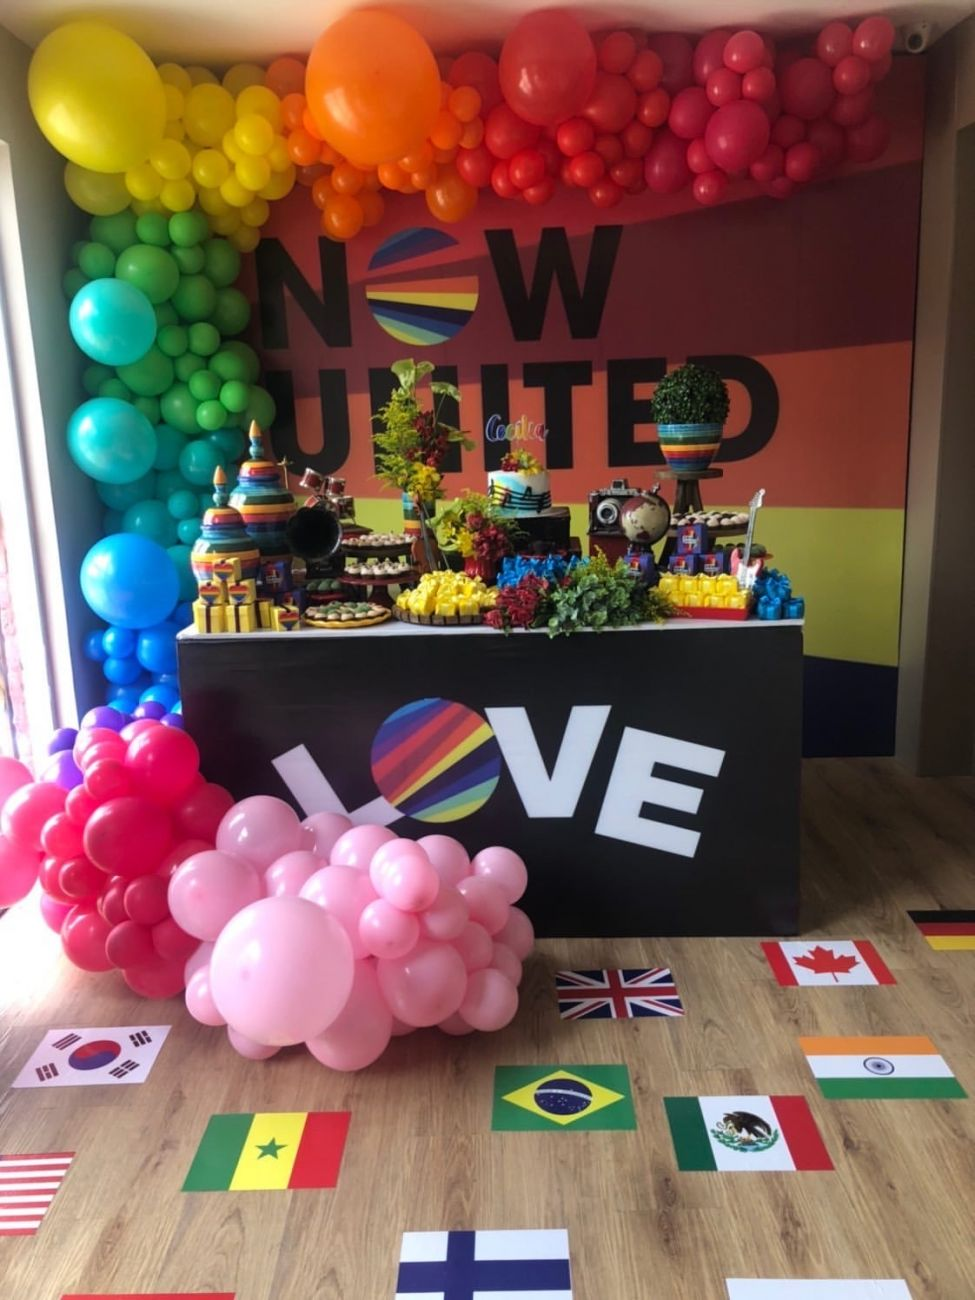 festa now united decoracao 1